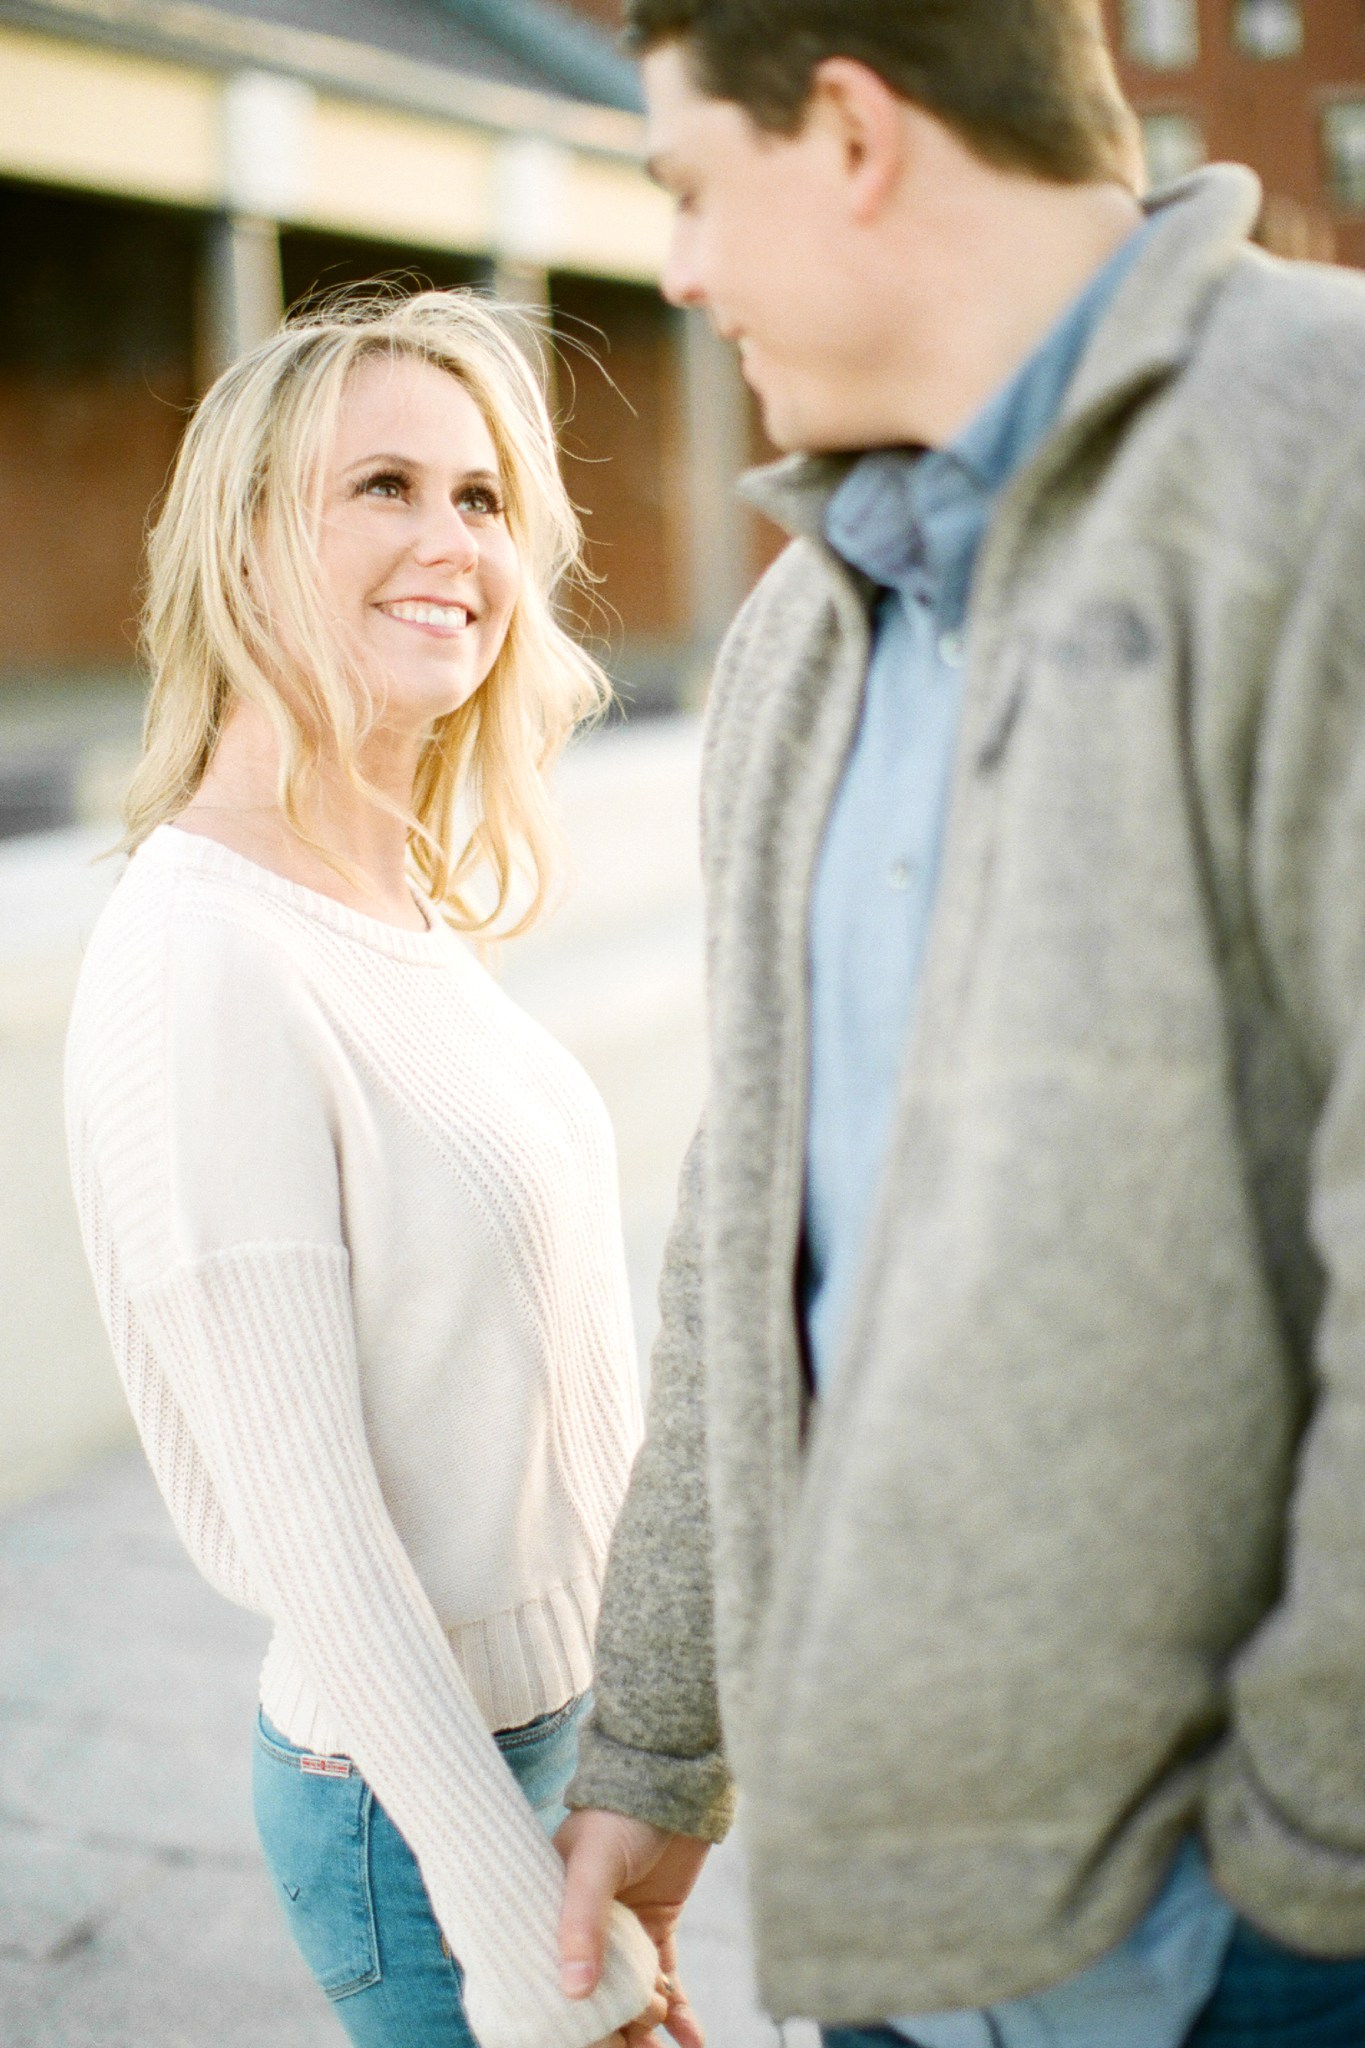 boston_engagement_session_deborah_zoe_00003.JPG